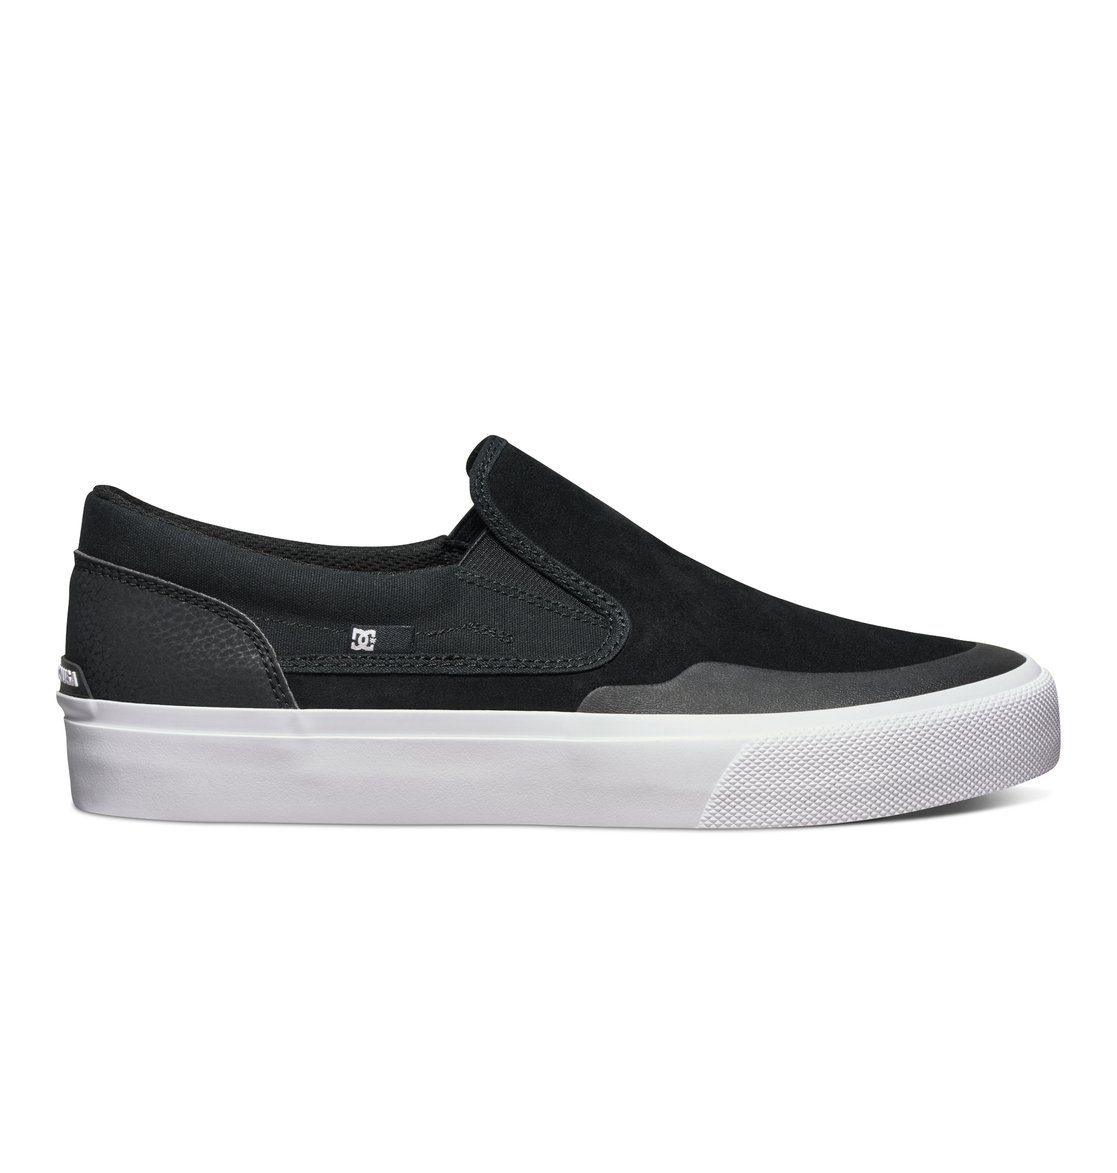 DC DC Trase S Sneakers Black/White reliable sale online discount tumblr VhbAFm6r9